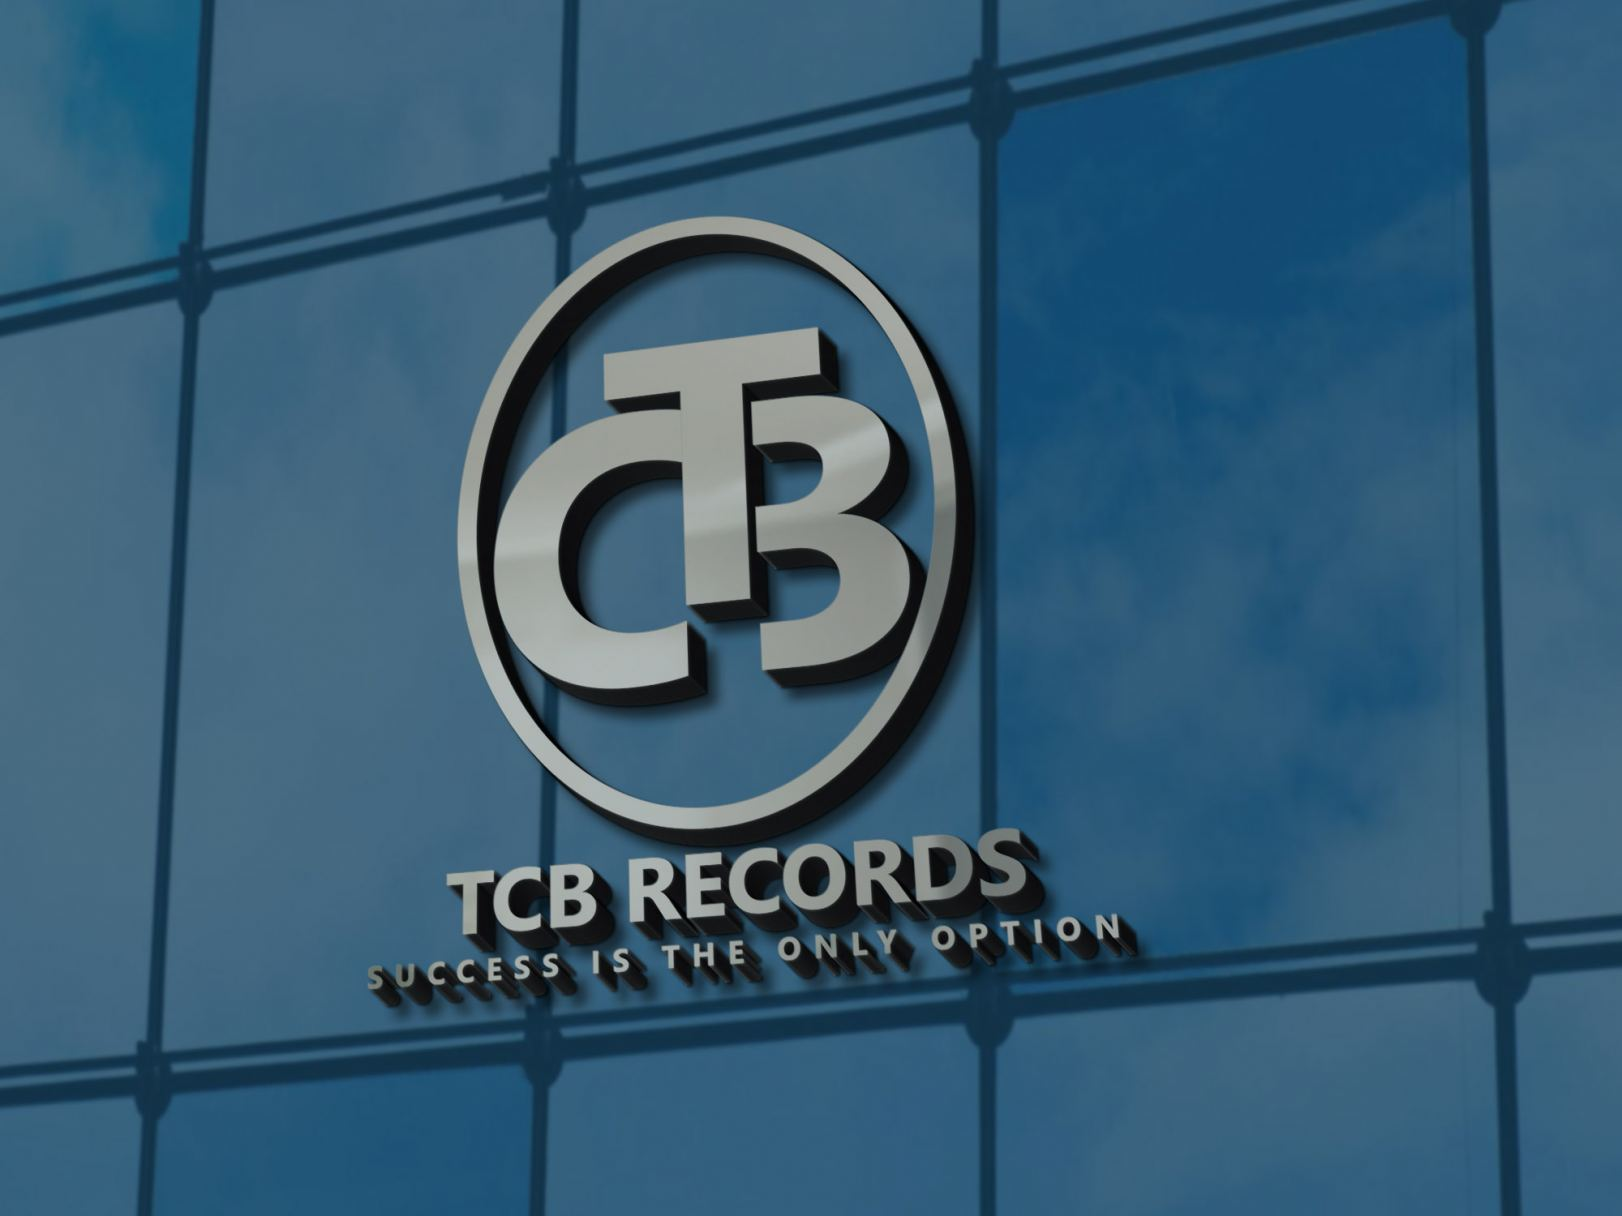 TCB RECORDS Logo